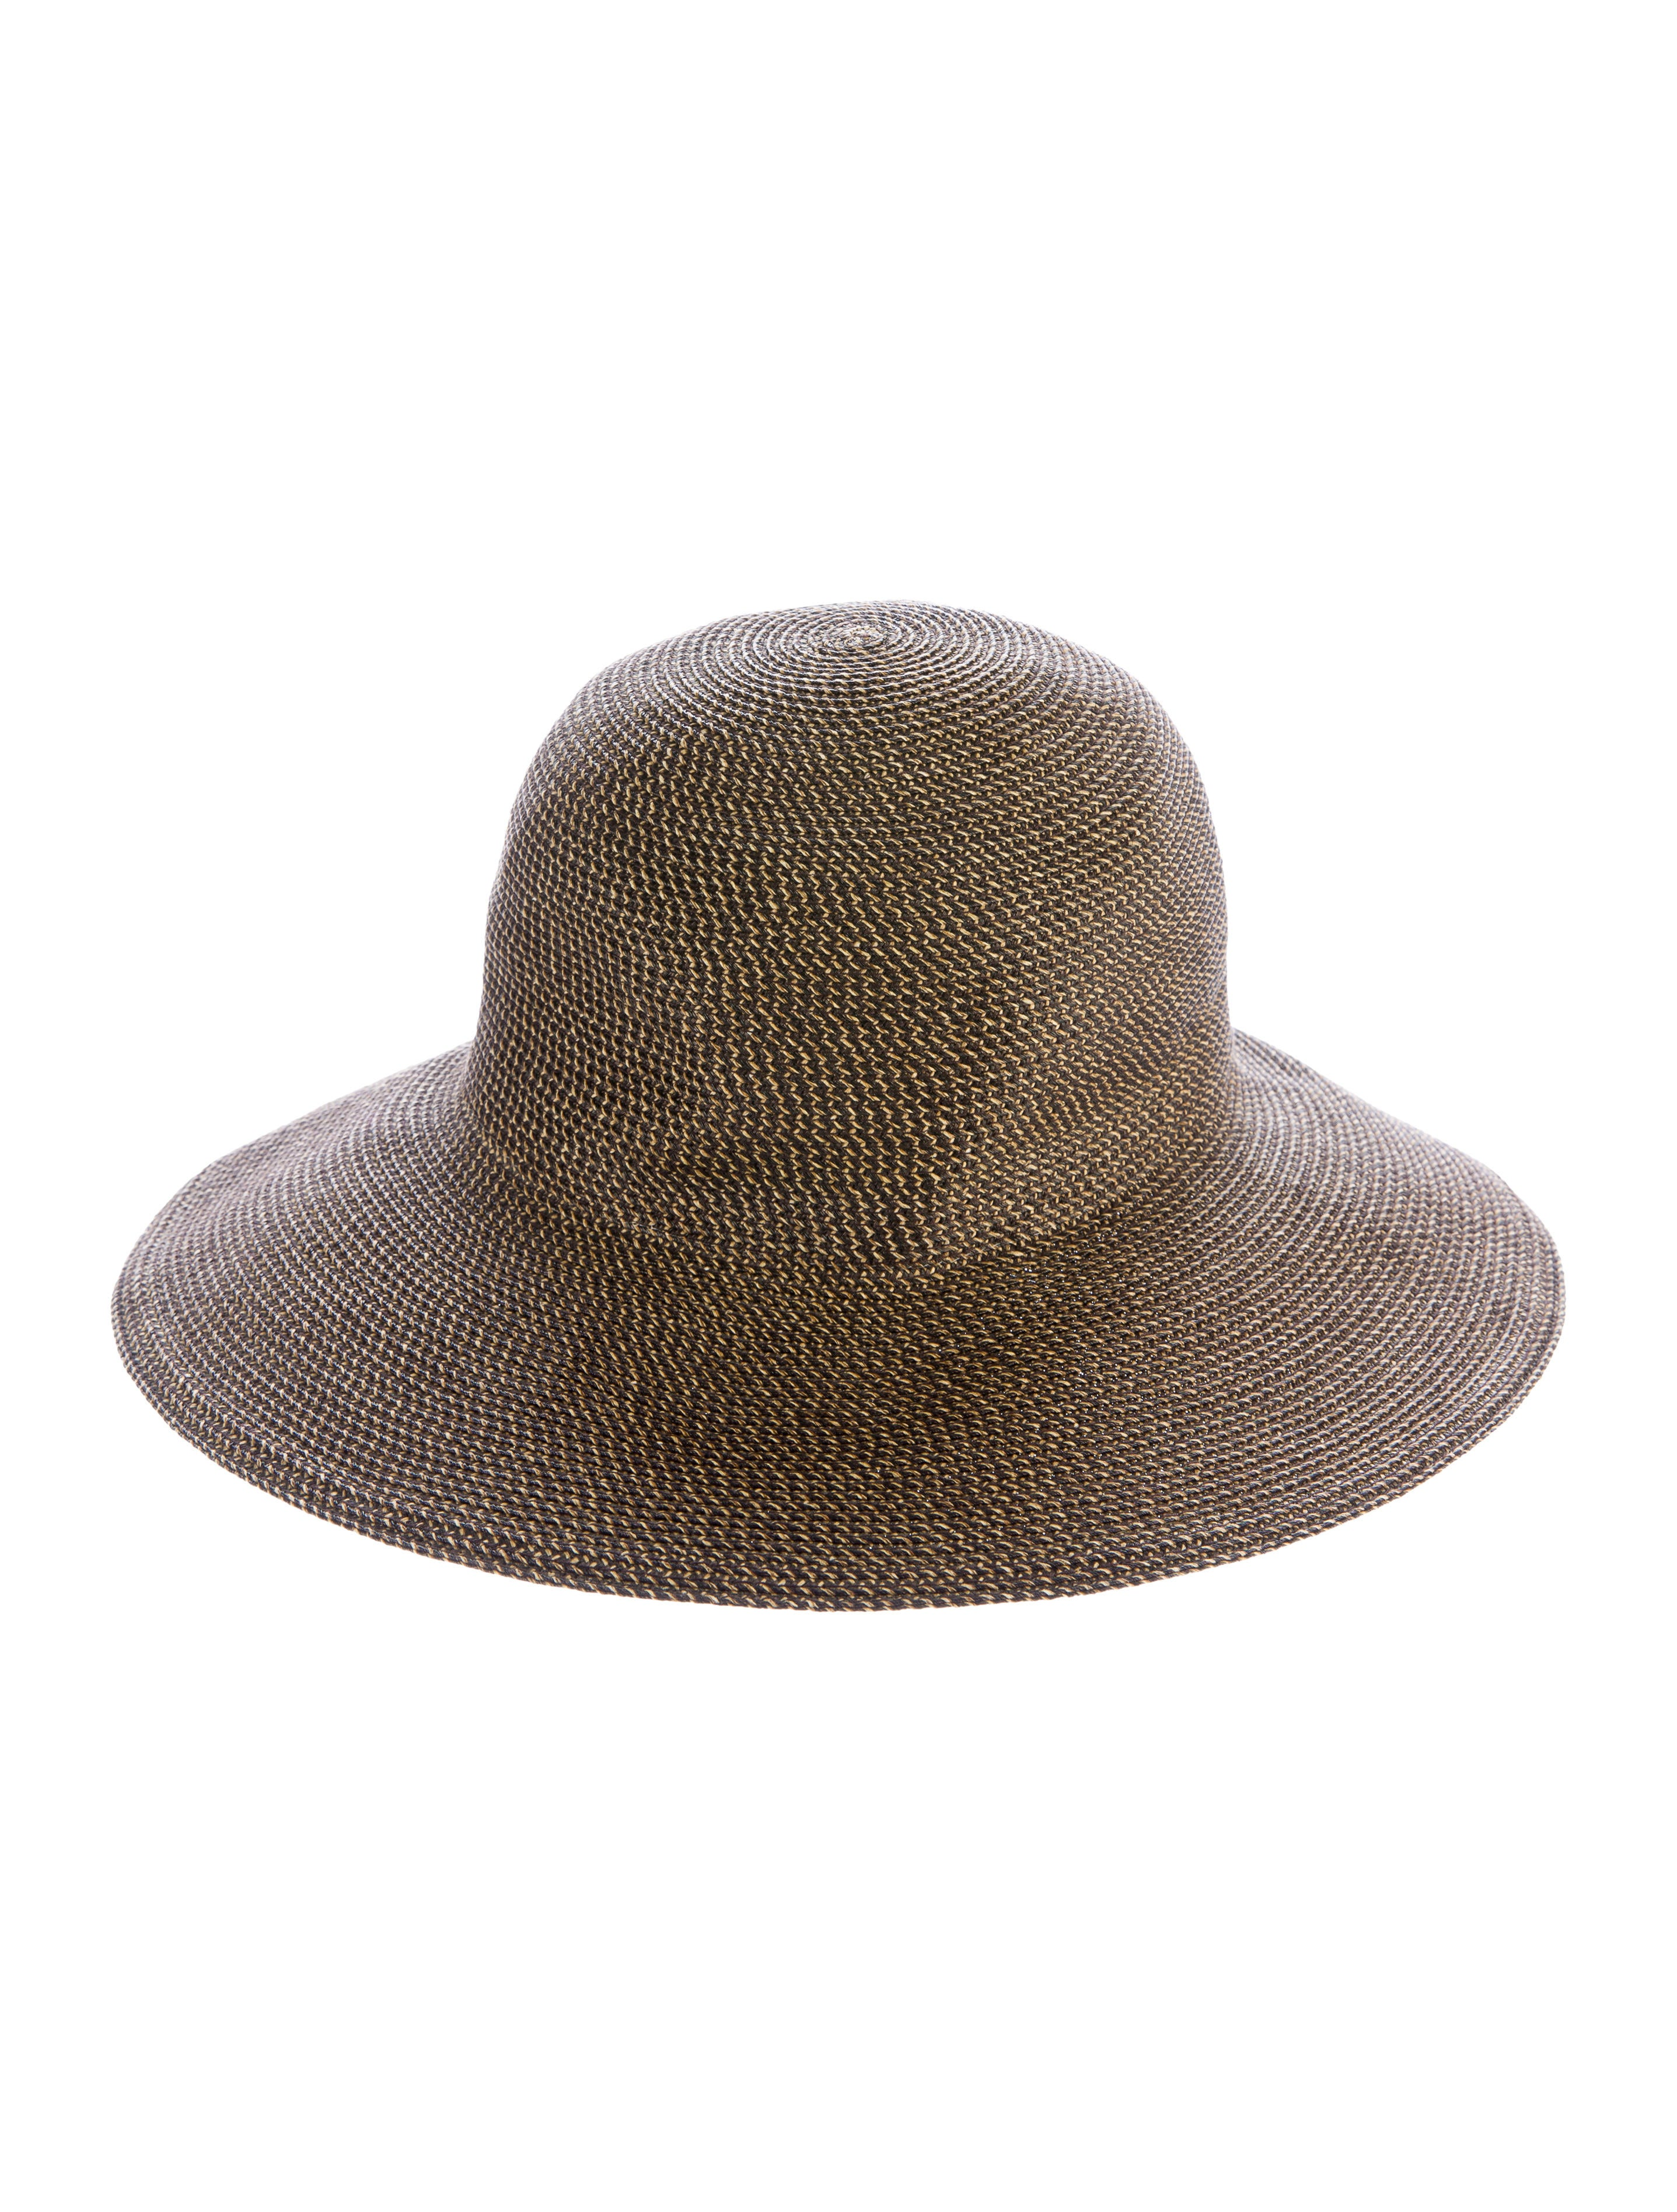 Stetson Hats Ivy Leaguer Hemp Straw Fedora Hat. Proudly made in the USA, the woven hemp body is finished in the perennial pinch crown shape and embellished with an